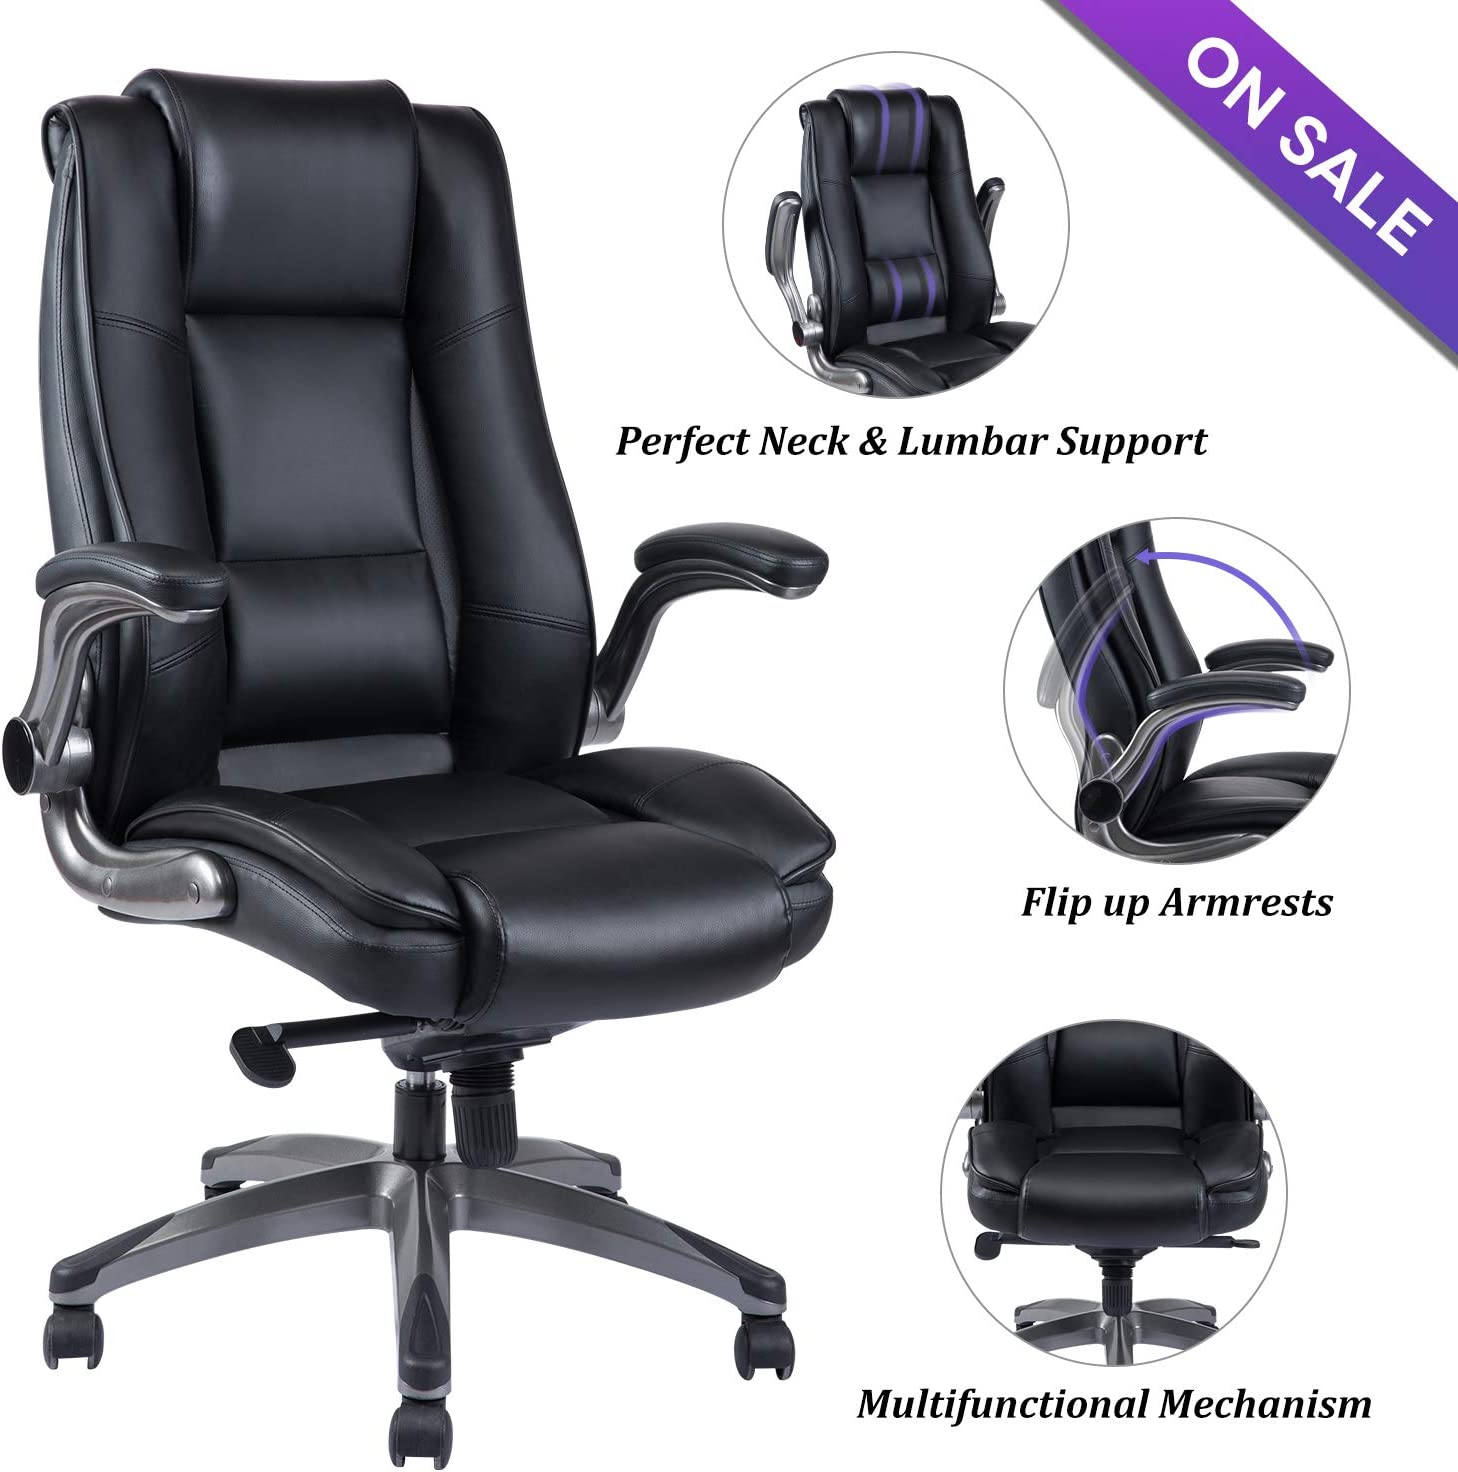 VANBOW High Back Leather Office Chair - Adjustable Tilt Angle and Flip-up Arms Executive Computer Desk Chair, Thick Padding for Comfort and Ergonomic Design for Lumbar Support, Black